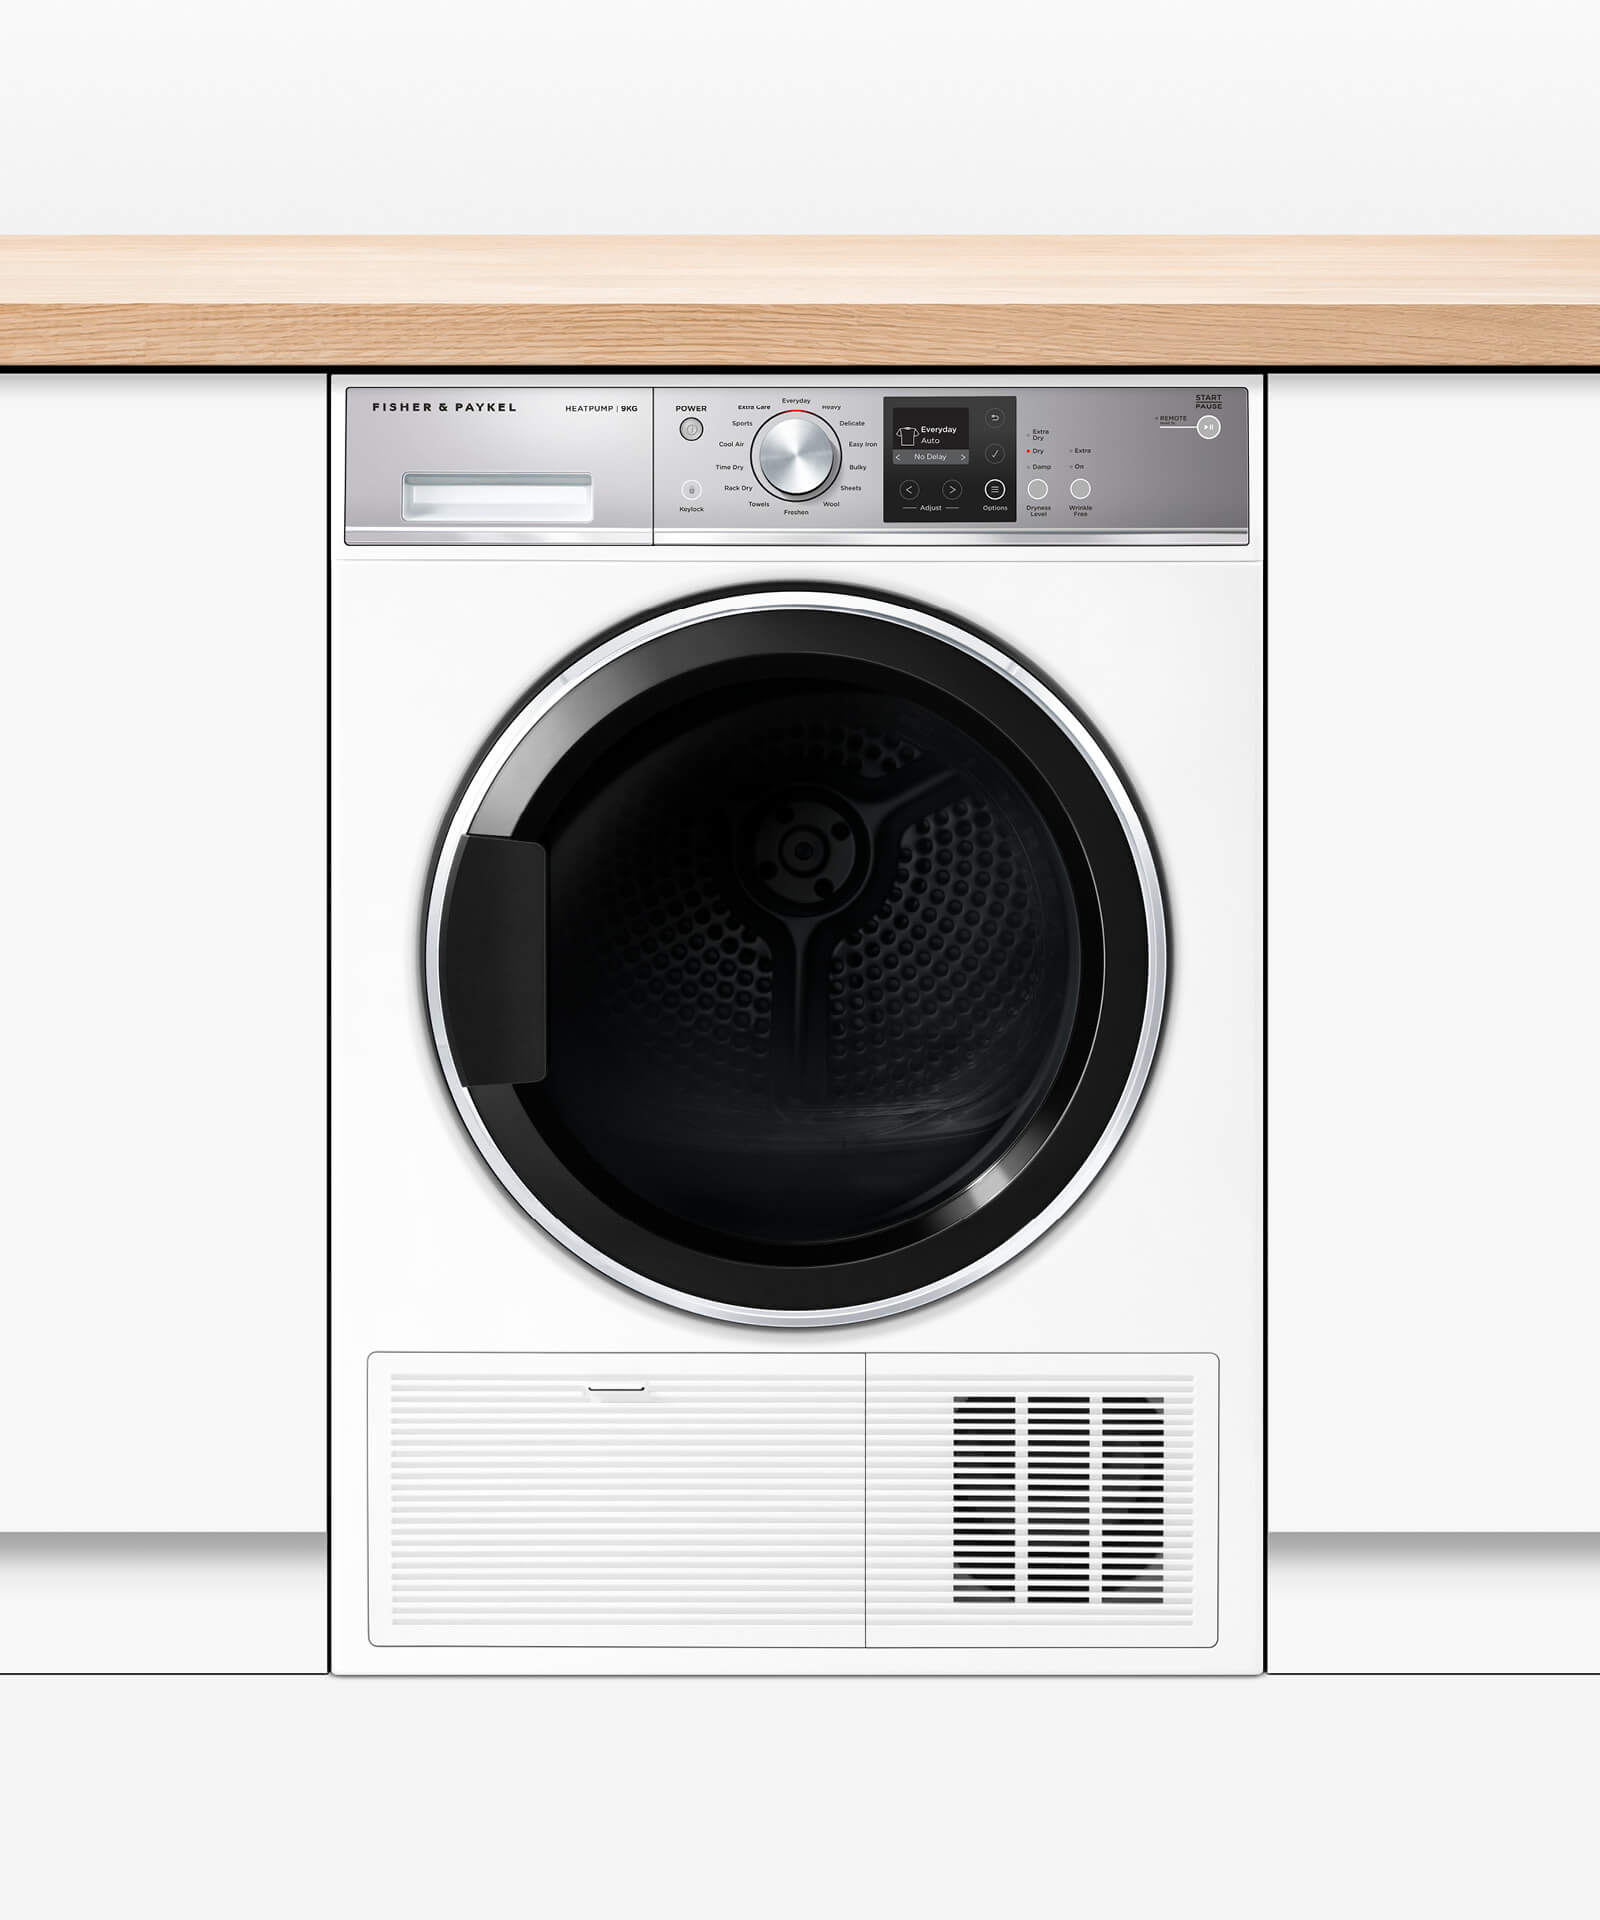 fisher and paykel dryer manual